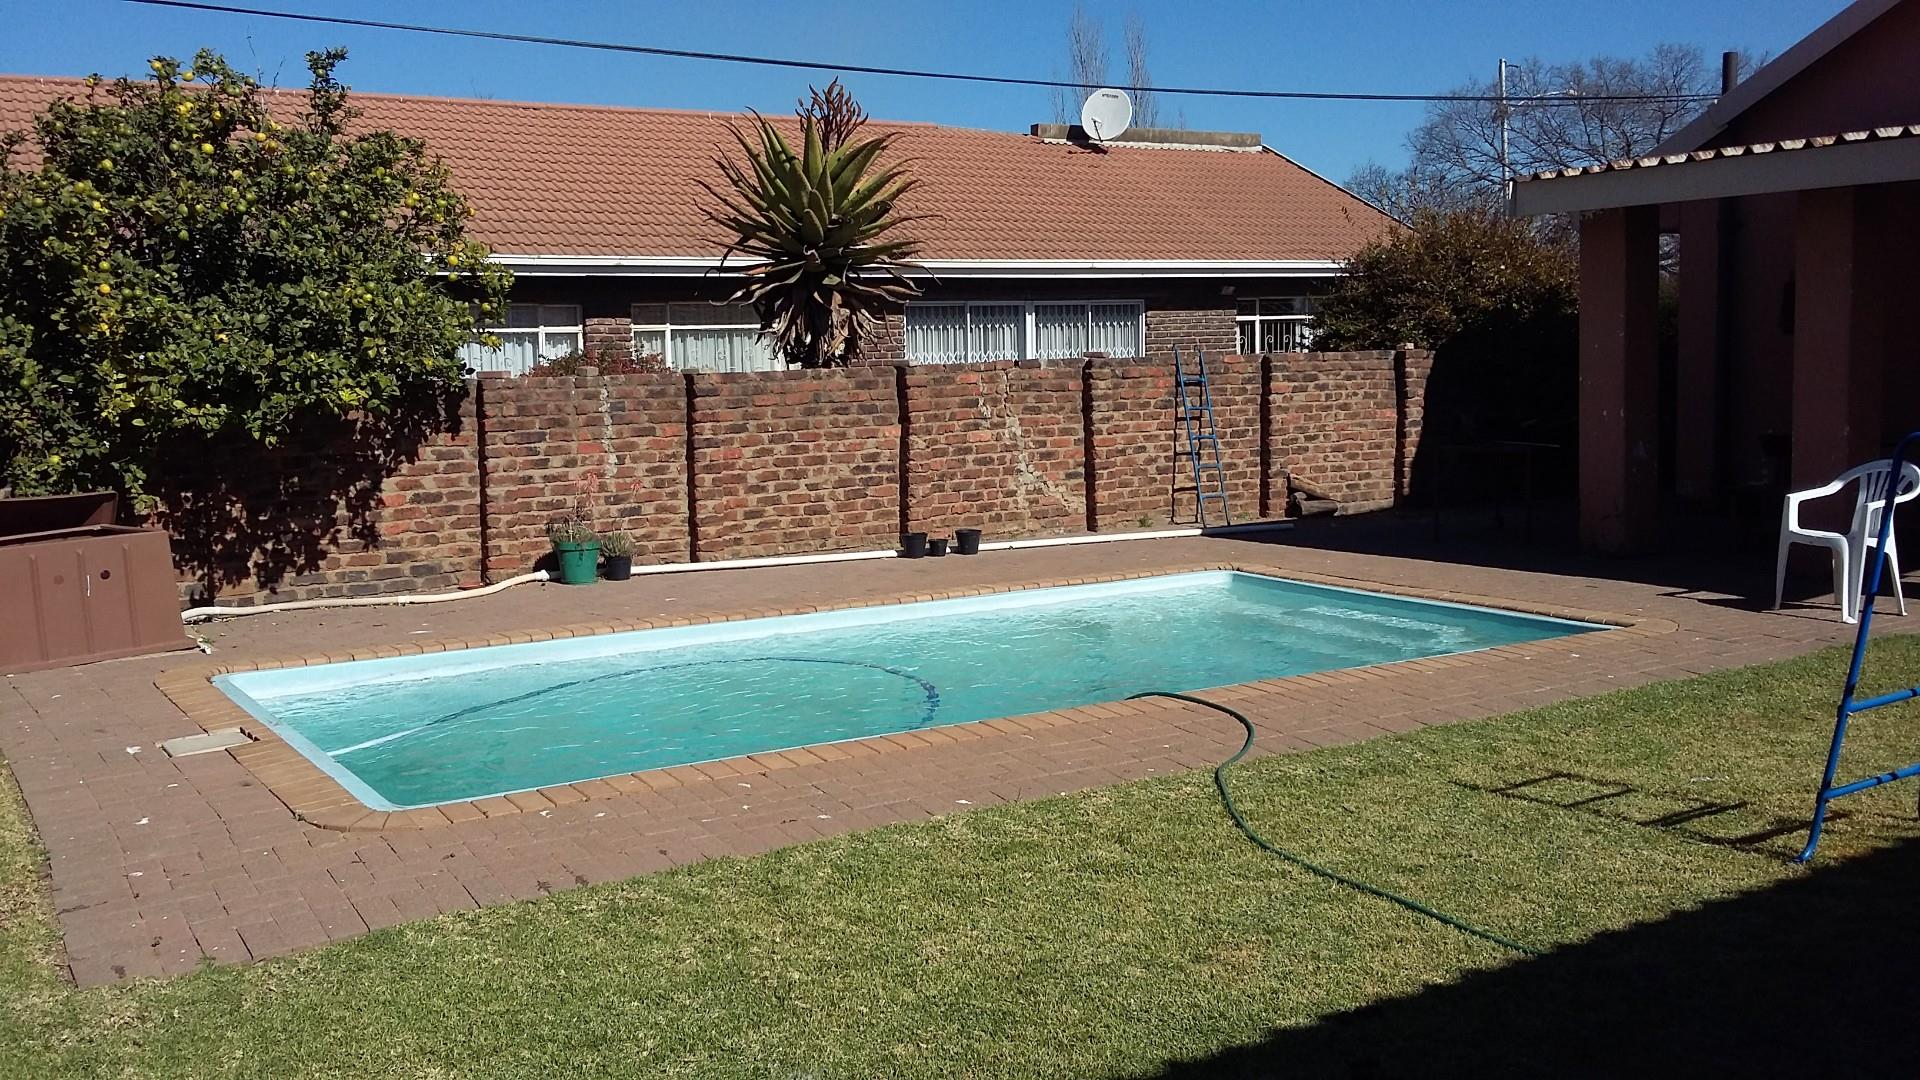 4 Bedroom House For Sale in Arcon Park